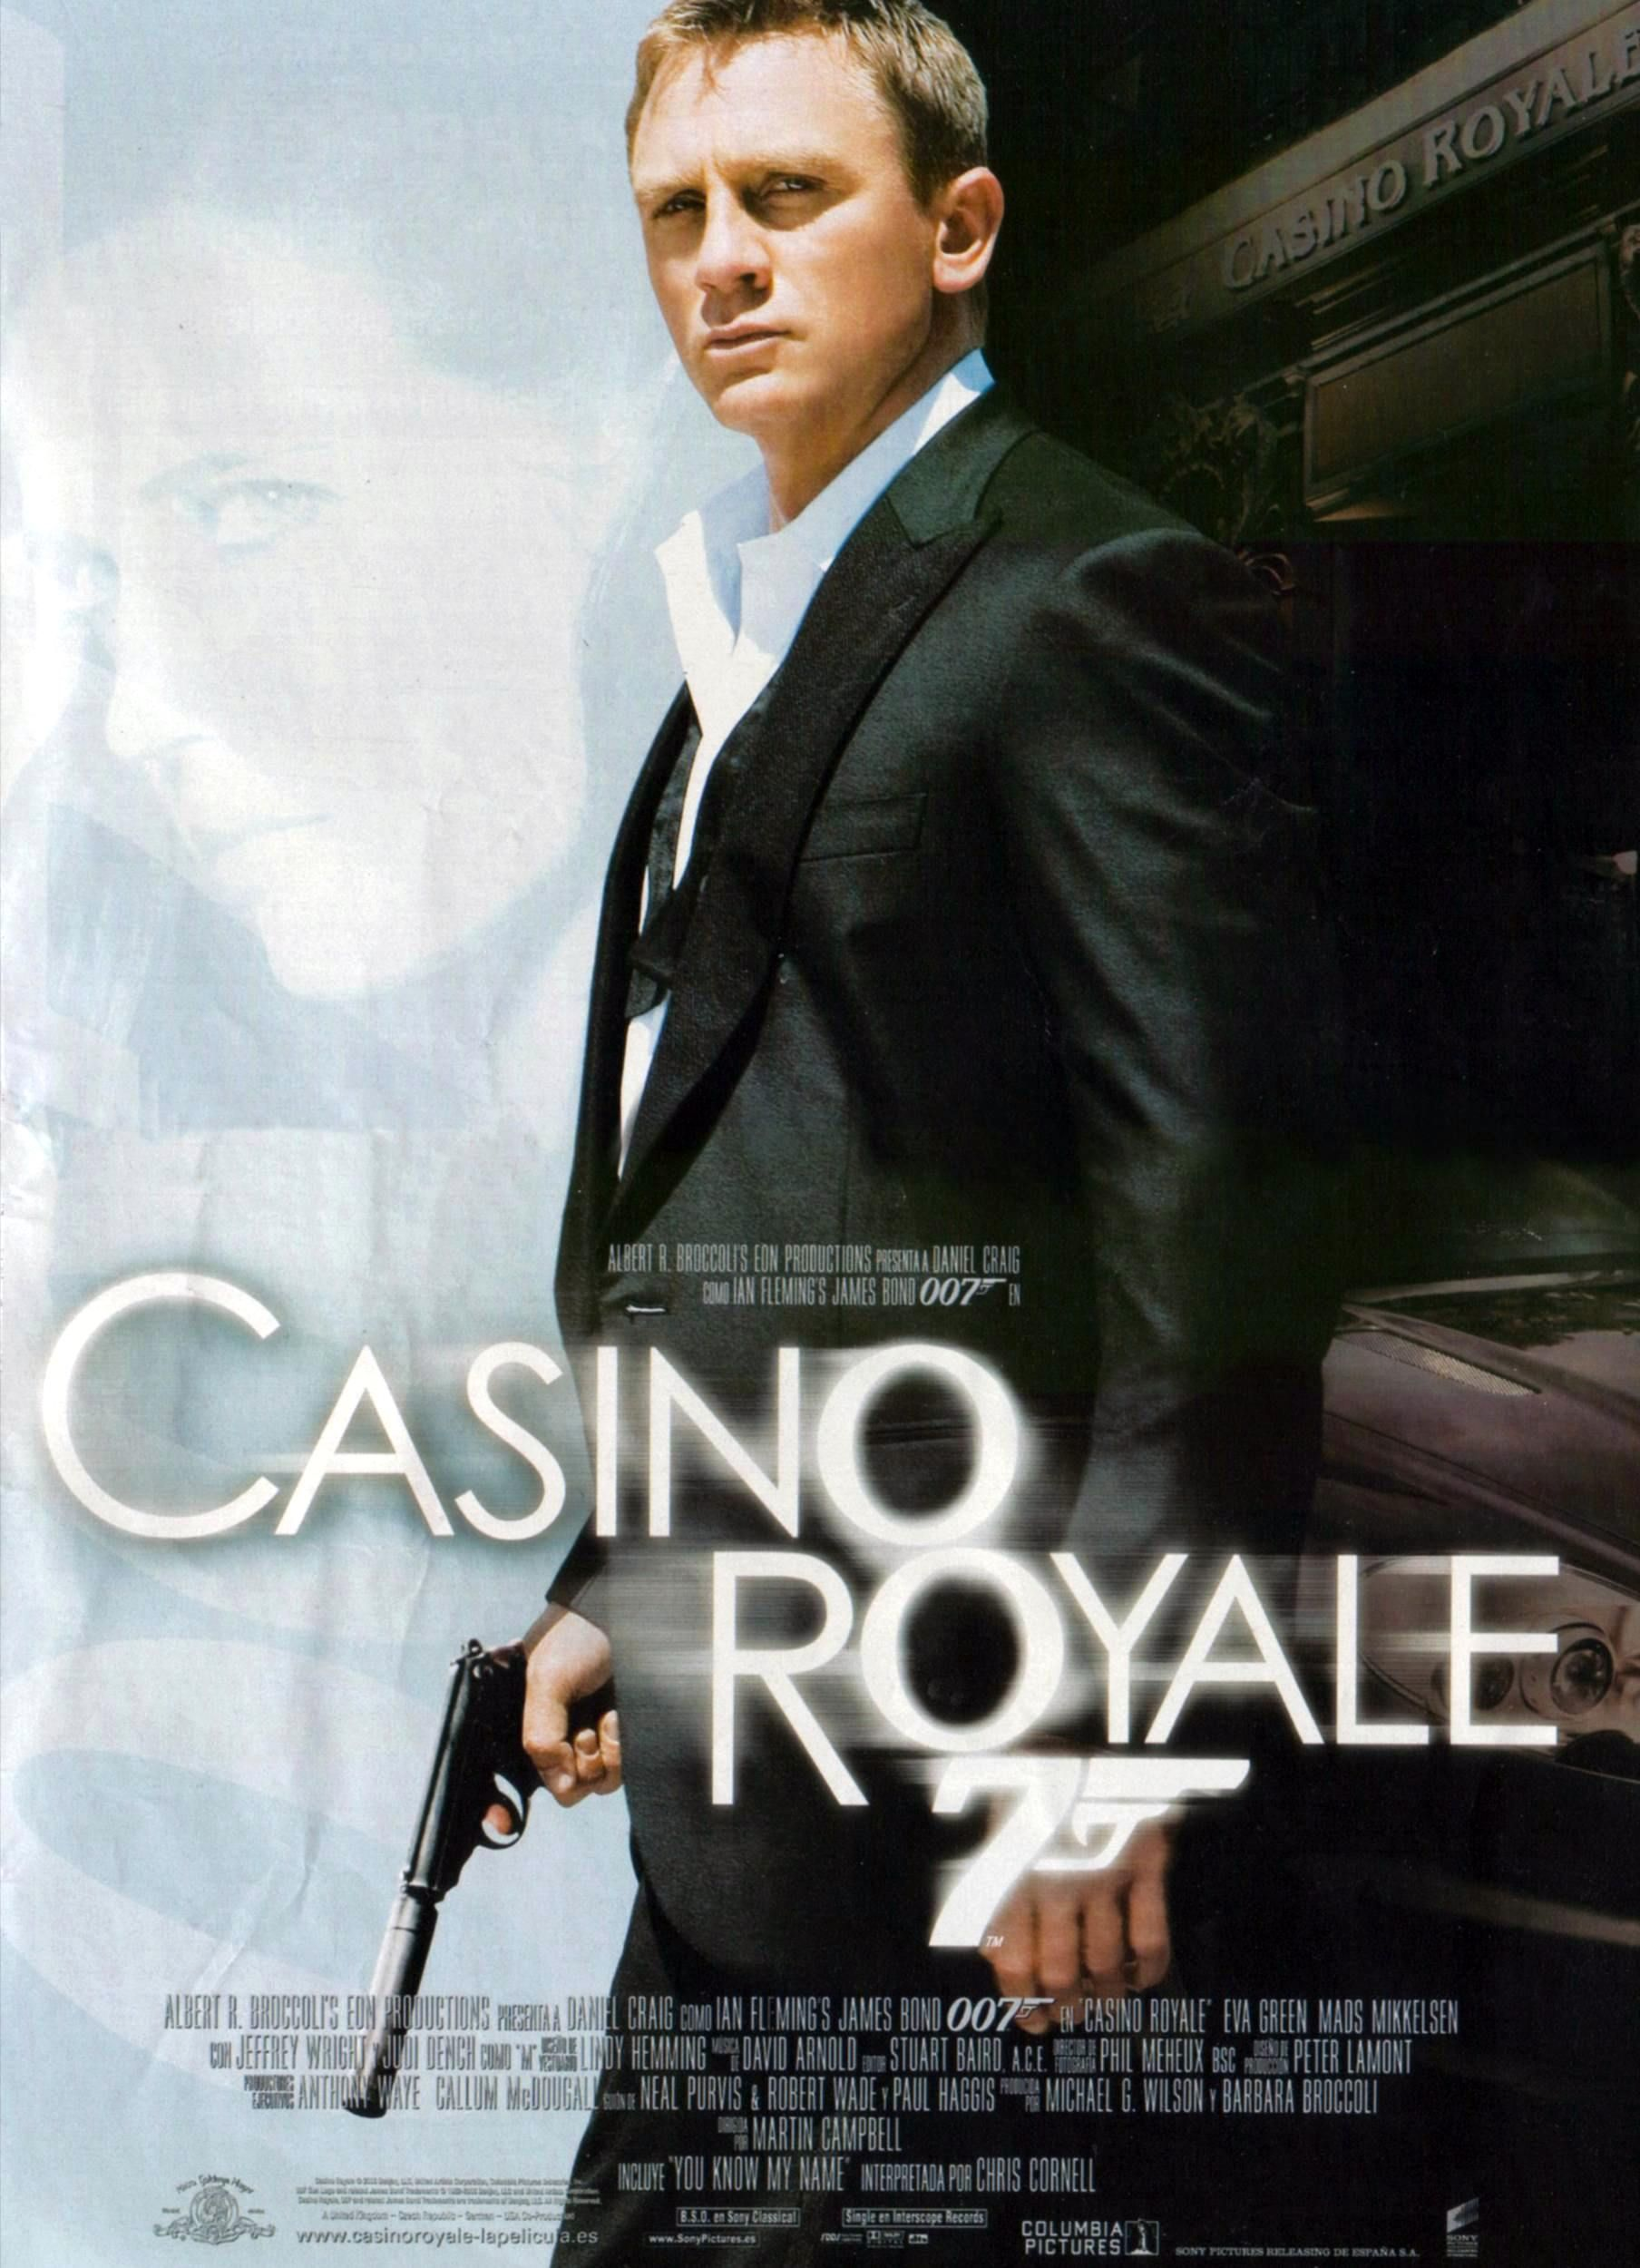 Casino royale 2006 film watch online roulette no deposit casino bonuses